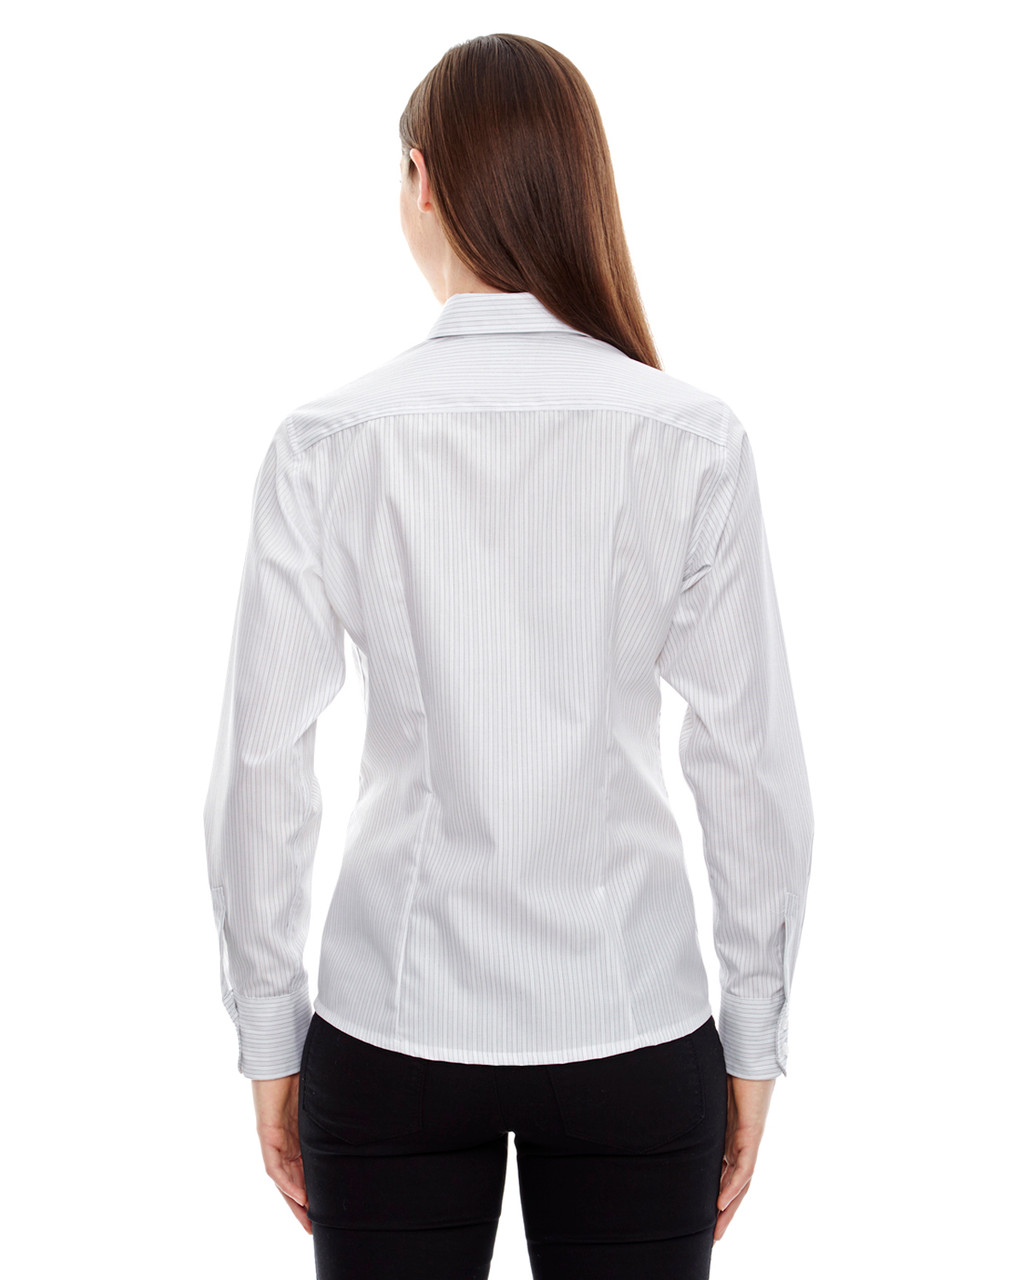 White - Back, 78674 North End Ladies' Boardwalk Wrinkle-Free Two-Ply 80's Cotton Striped Tape Shirt | BlankClothing.ca